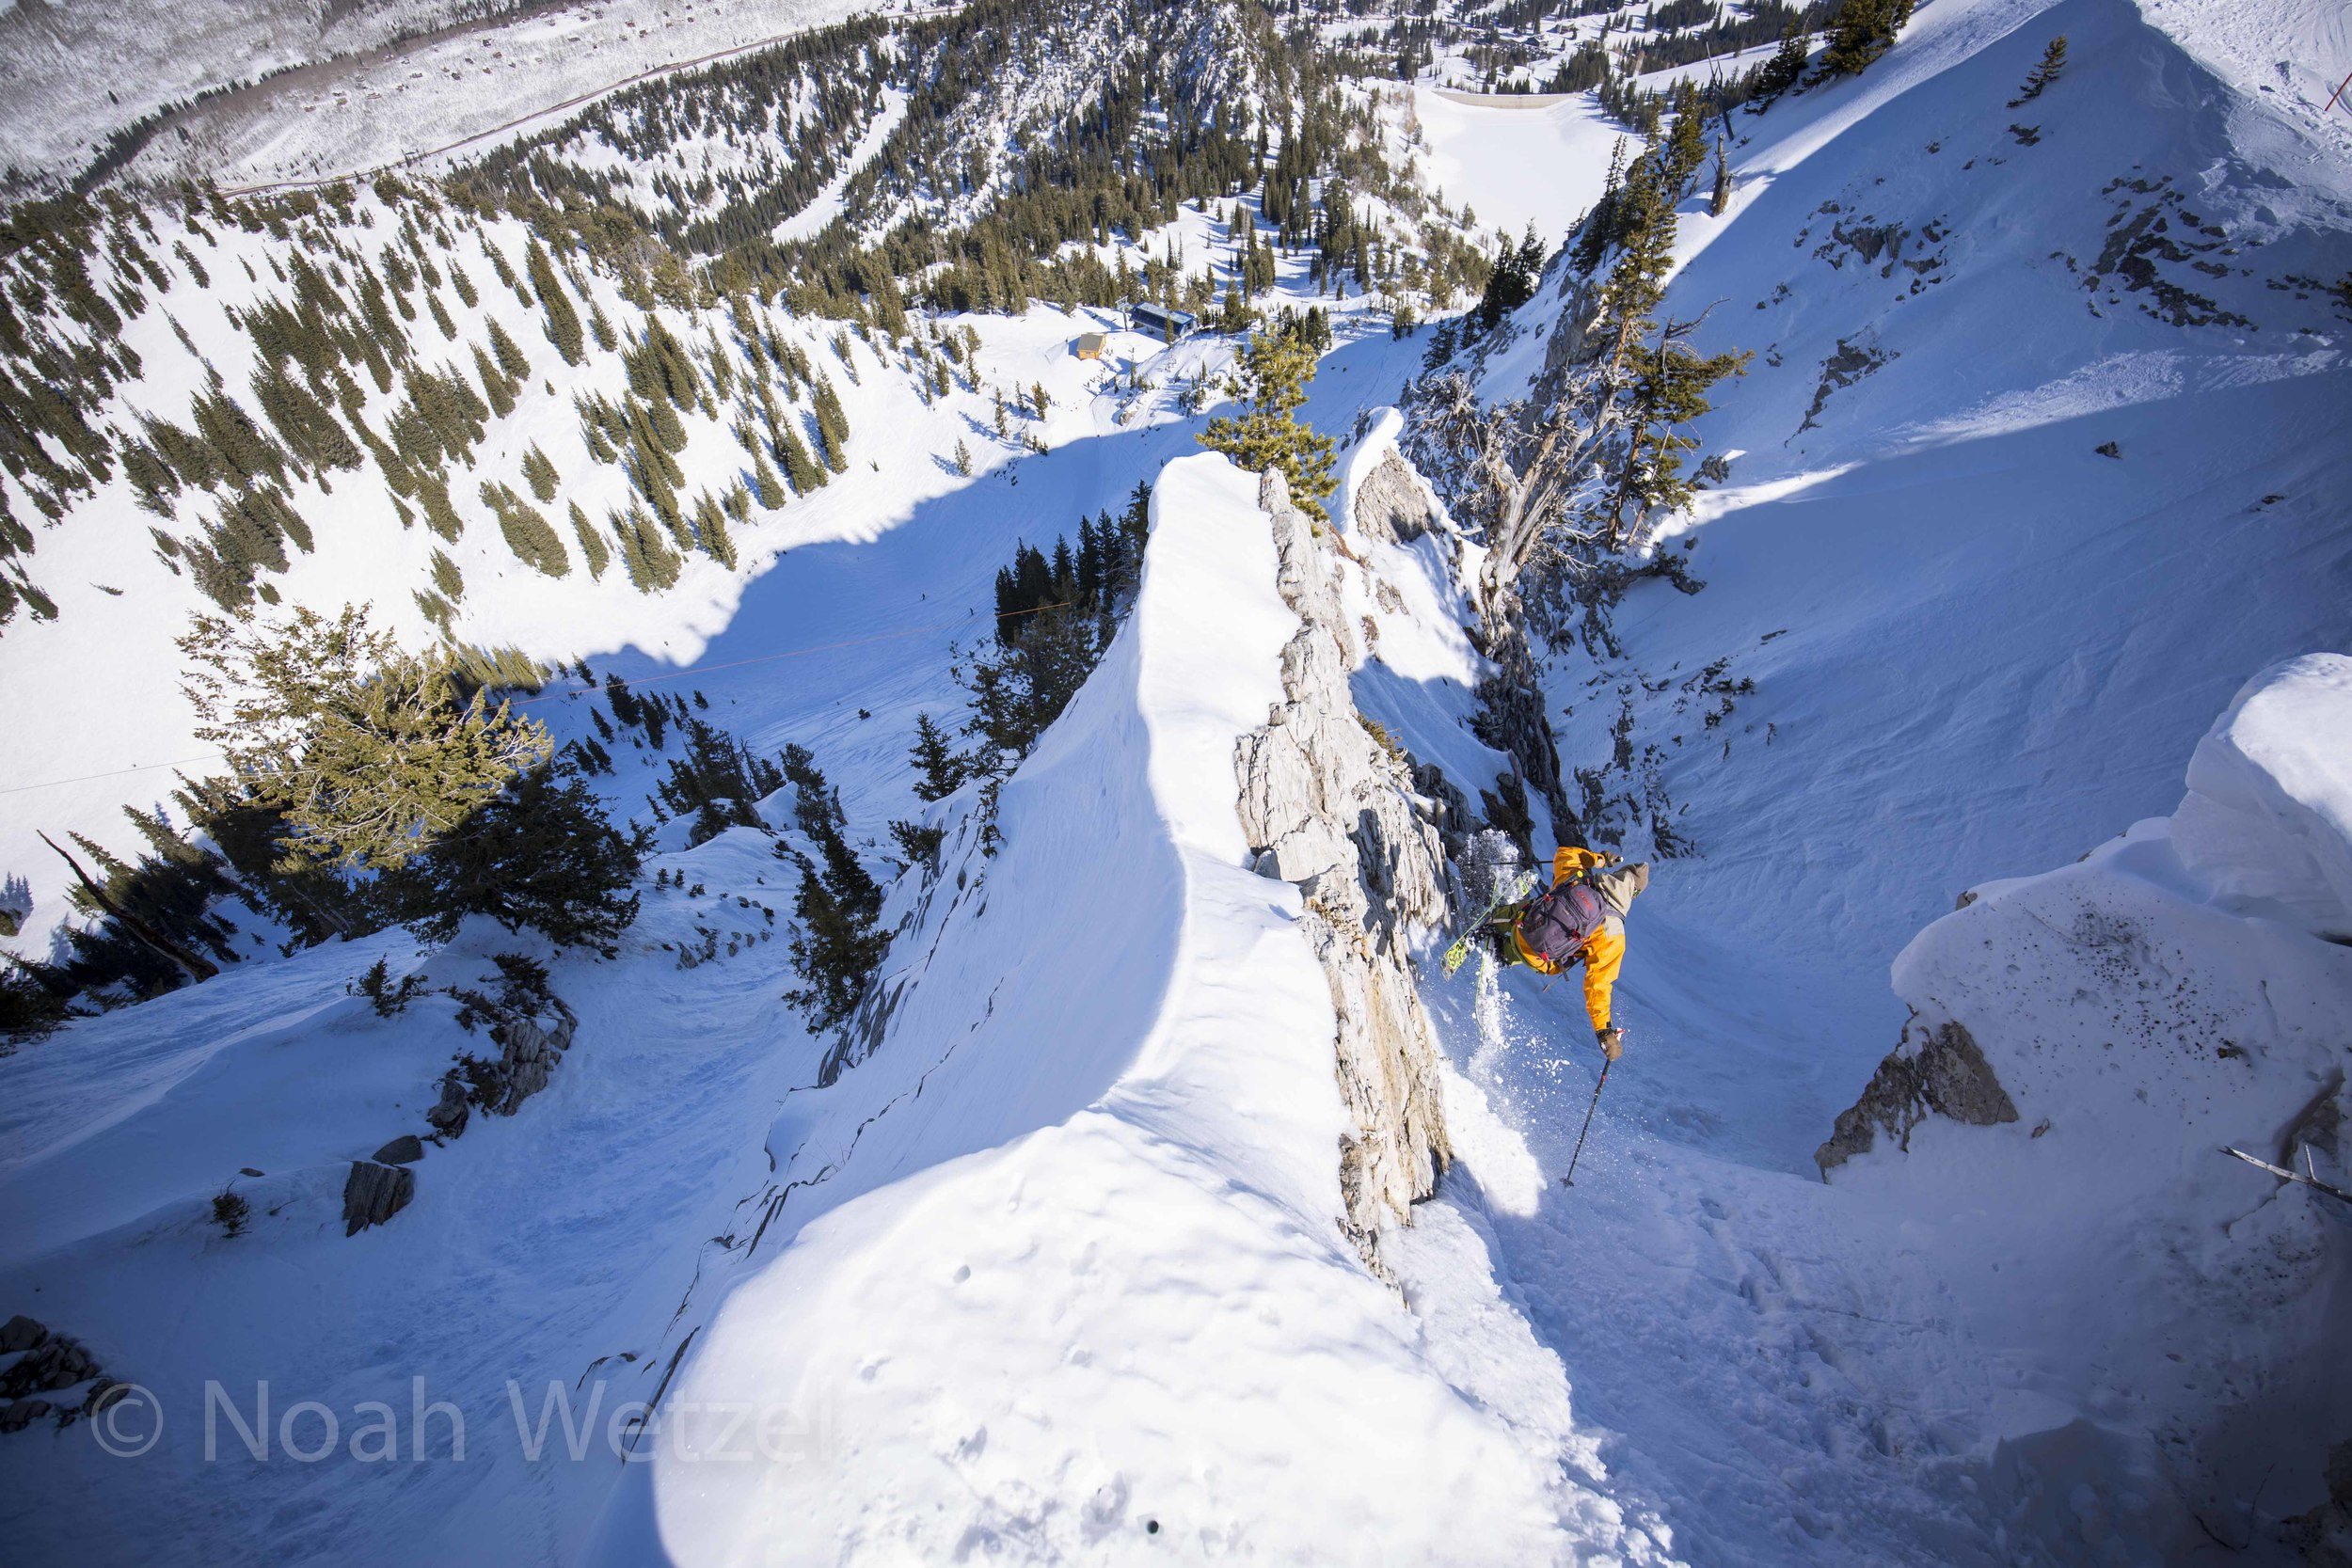 Willie Nelson jump turning his way down Fantasy Ridge at Solitude Mountain Resort, Utah. Day 3.